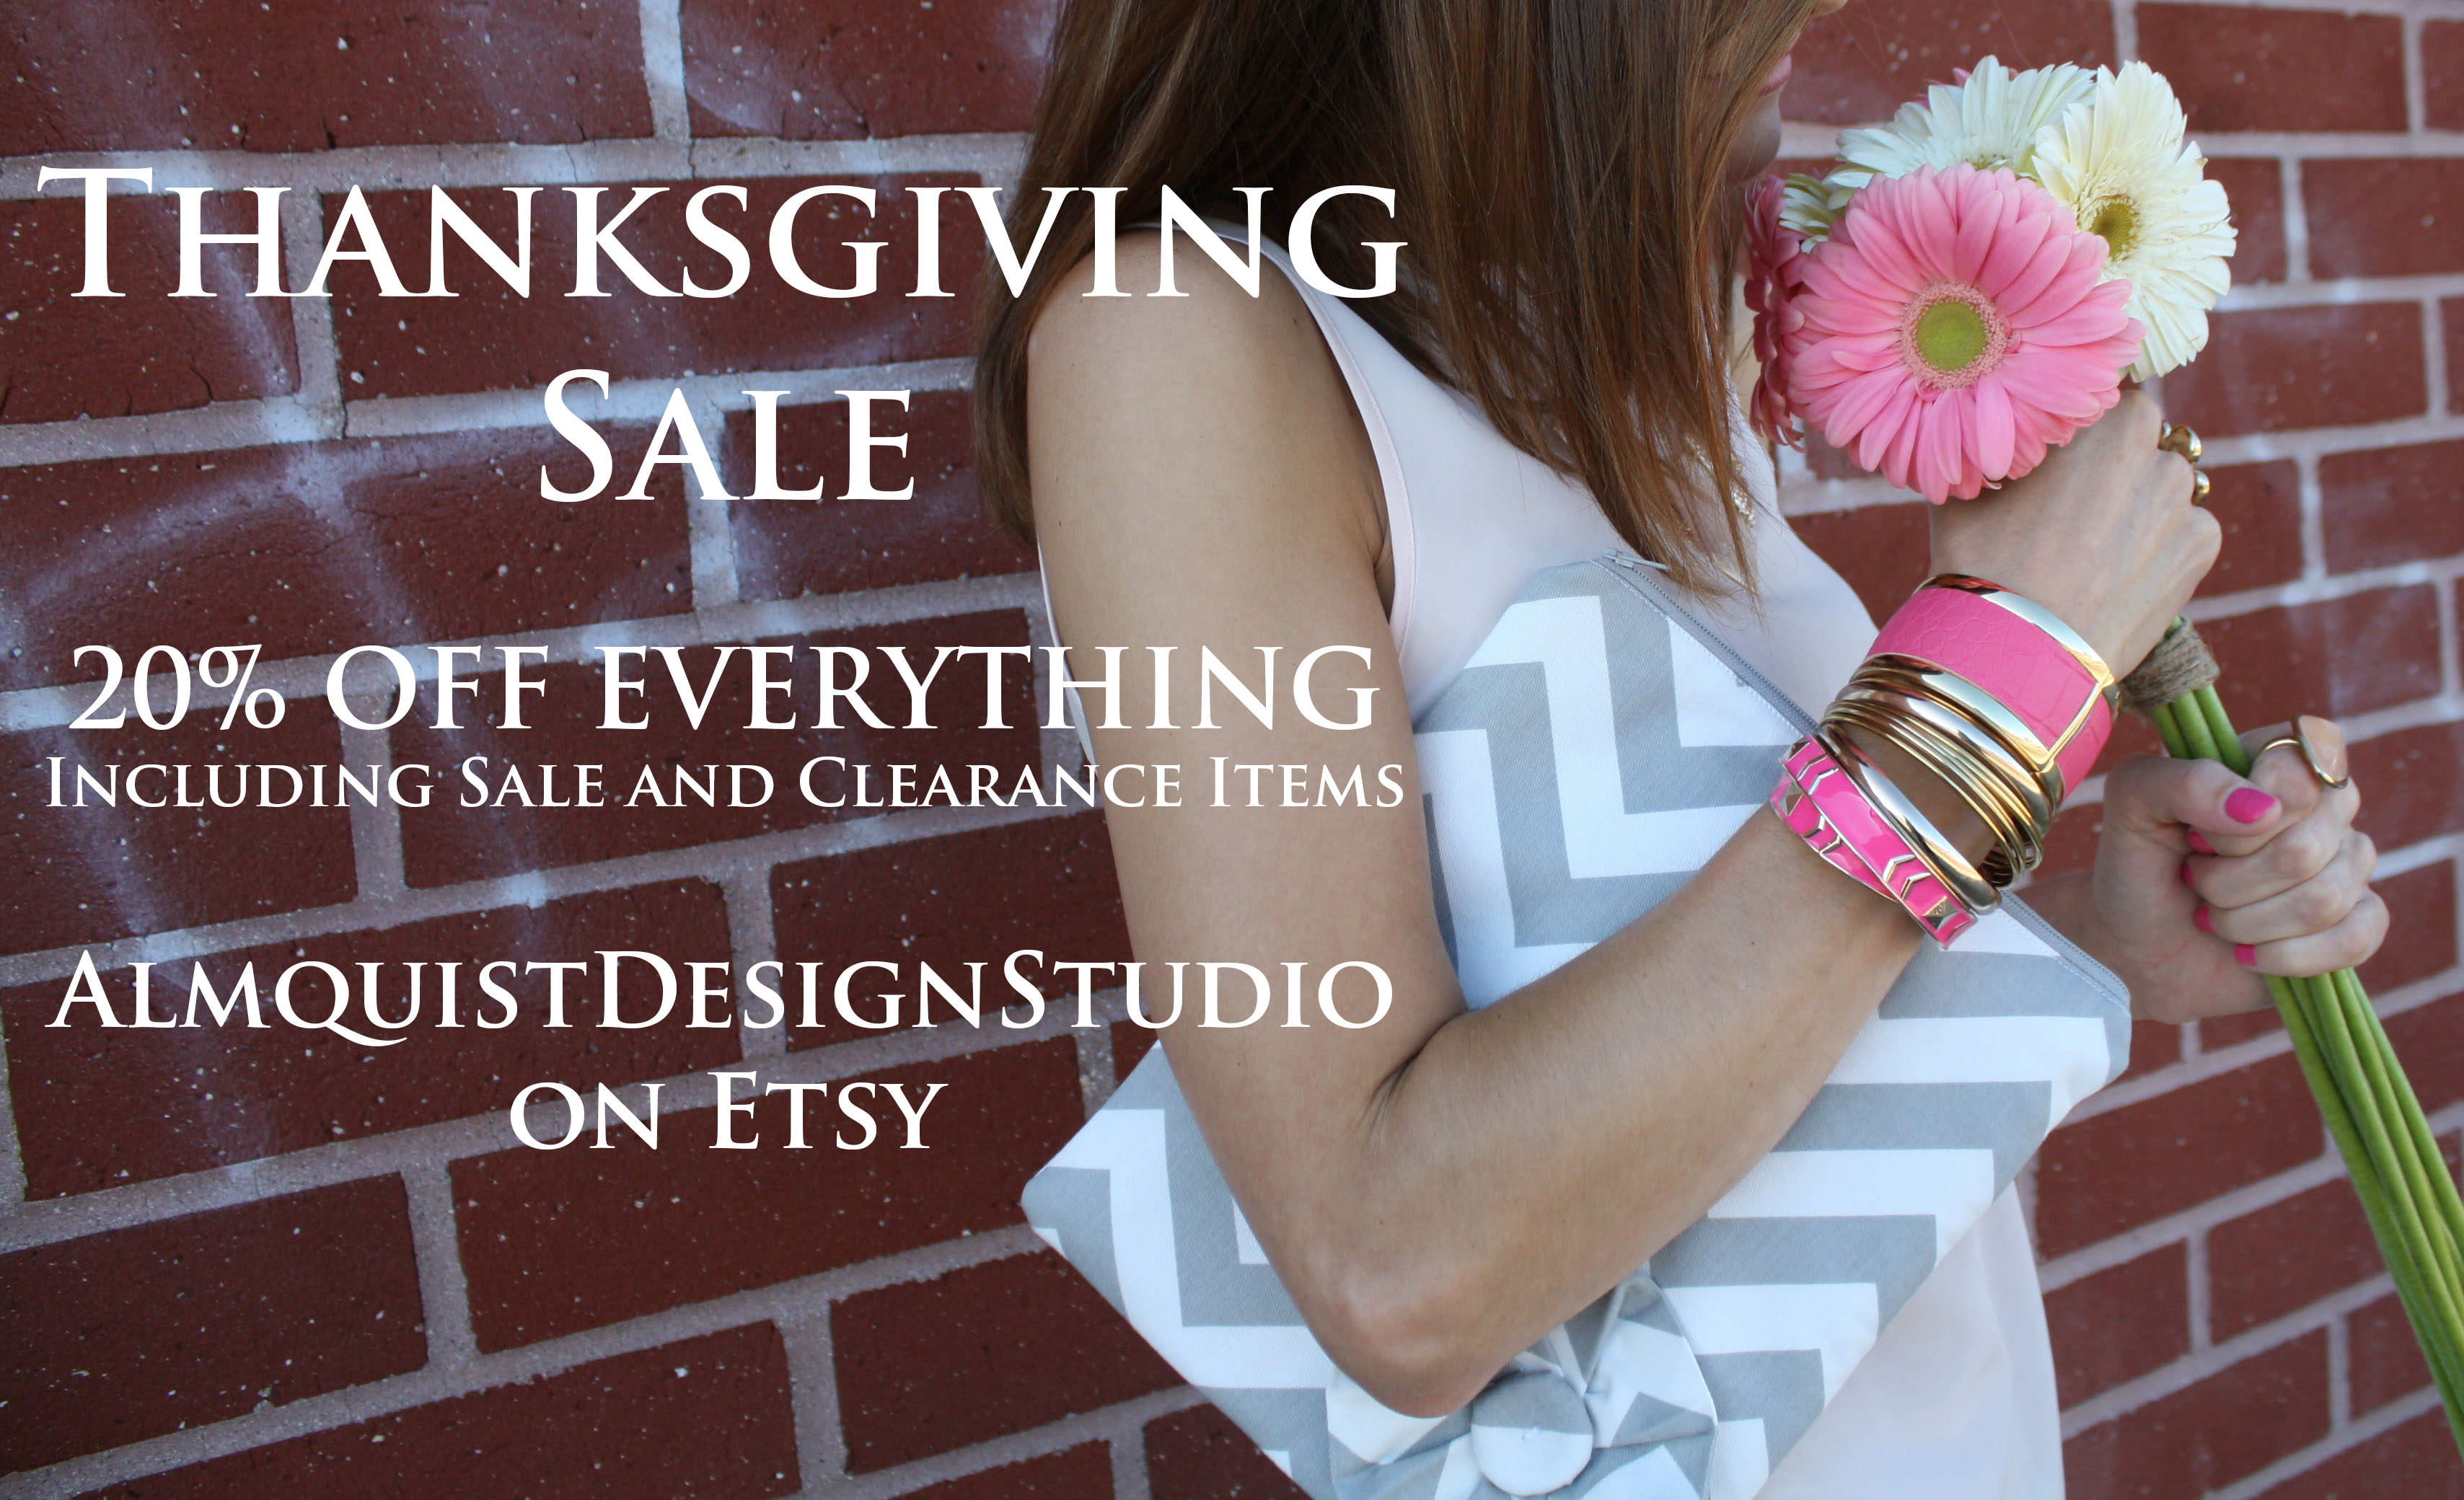 Our Thanksgiving Sale continues at AlmquistDesignStudio! Find us onEtsy!